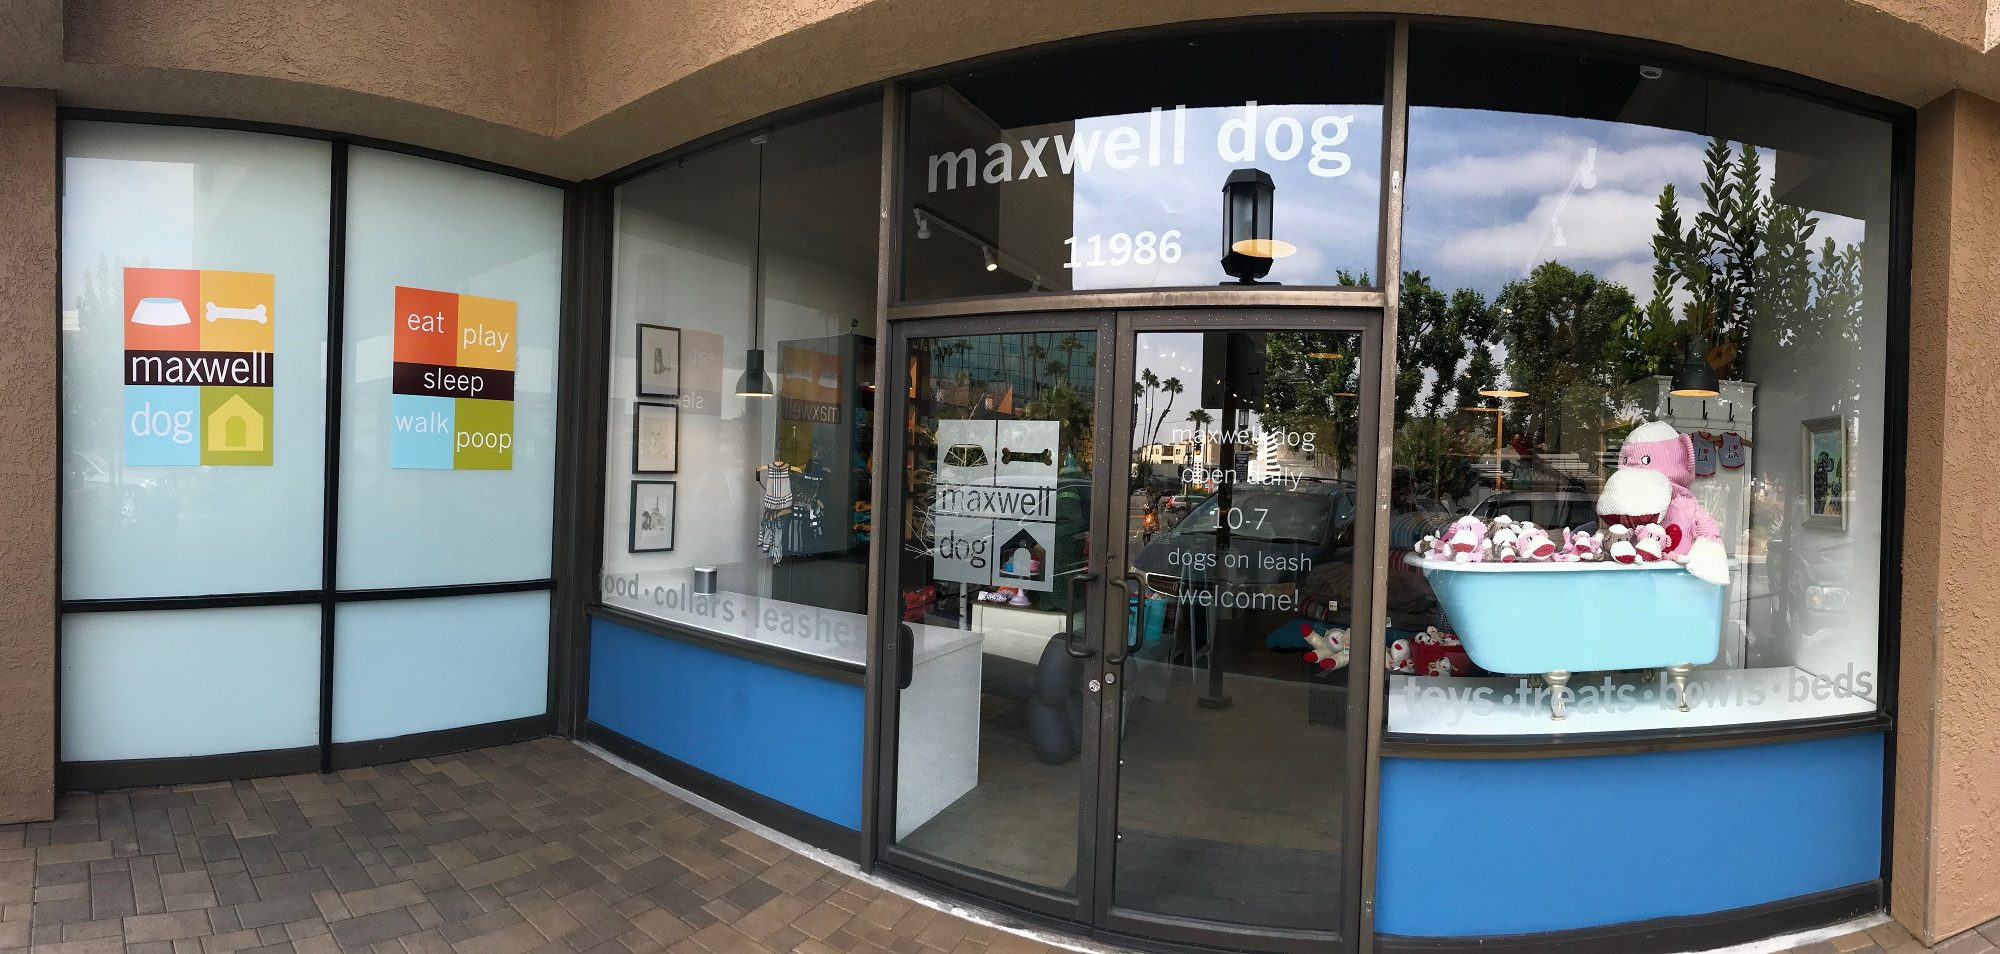 Window Graphics, Etched glass, Window logos, vinyl graphics, window vinyl, storefront sign, mall sign, shopping mall sign, vinyl graphics, door graphics, vinyl graphics, window graphics, vinyl window graphics, vinyl door graphics, store front lettering, business signage, outdoor sign, sign and banner company near me, sign companies, sign company near me, sign making, sign resource and like companies, signs for sale for business, brand lighting signs, sign logo, sign logo stand, where to make my logo sign, where to make my logo sign